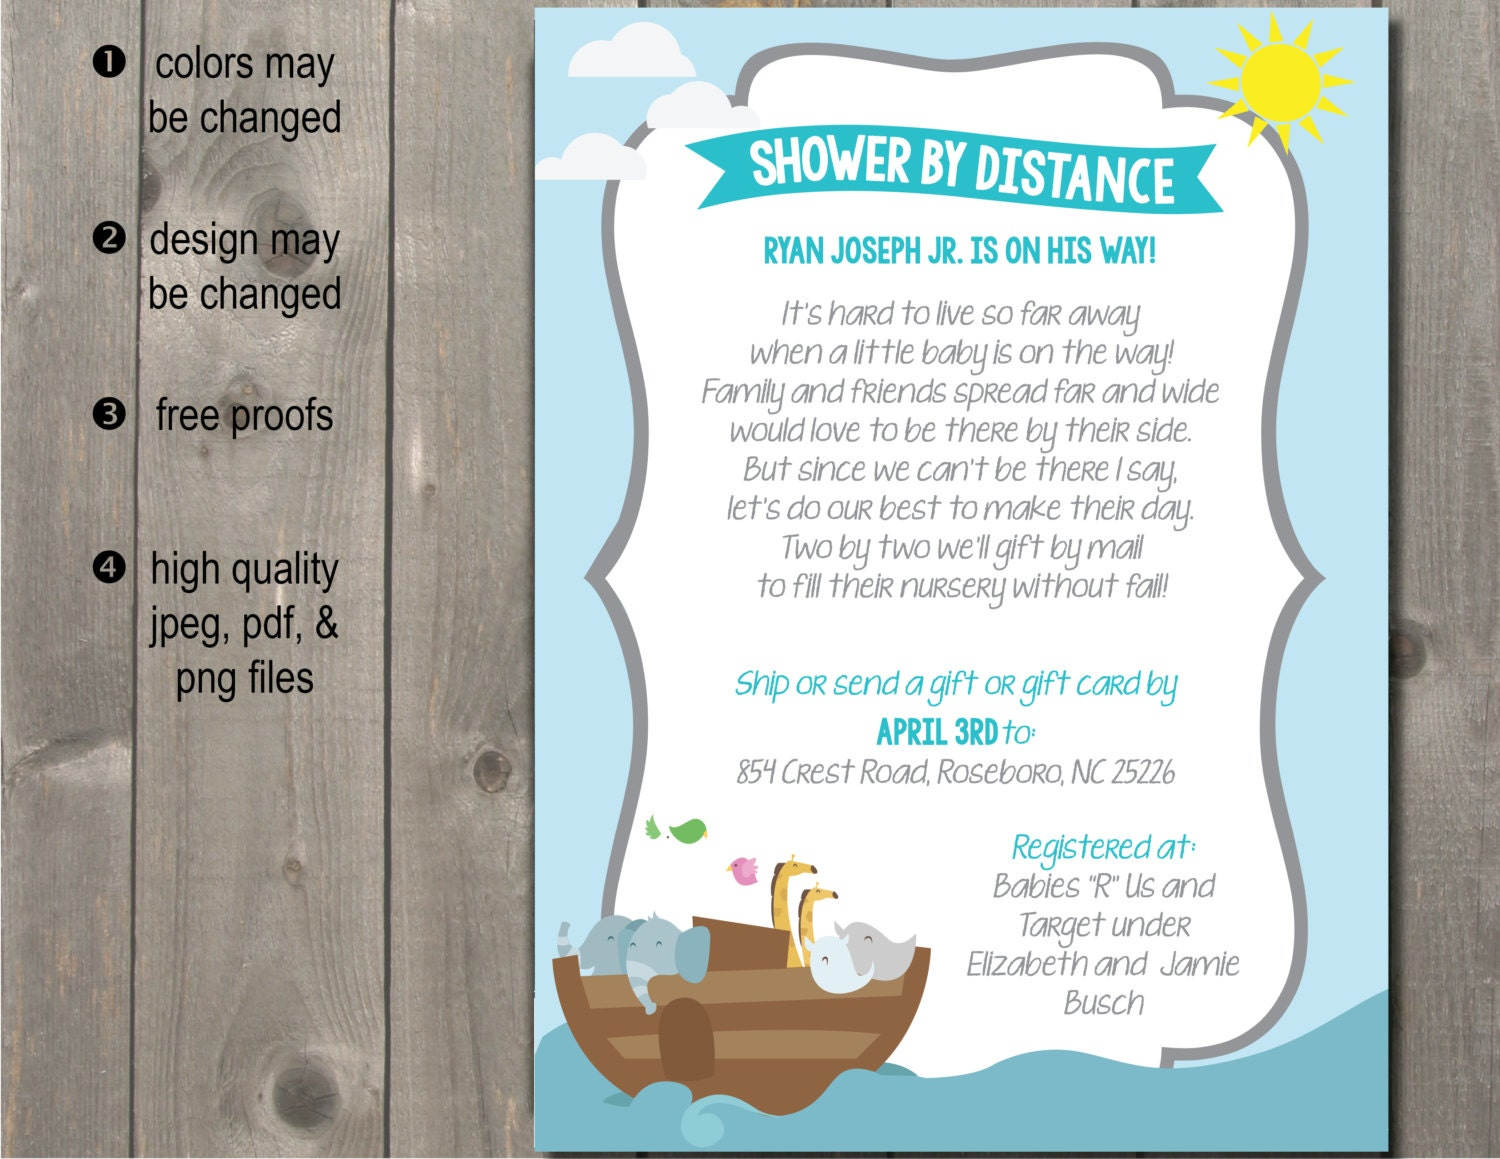 Long Distance Relationship Wedding Invitation: Long Distance Baby Shower Invitation Announcement / Shower By